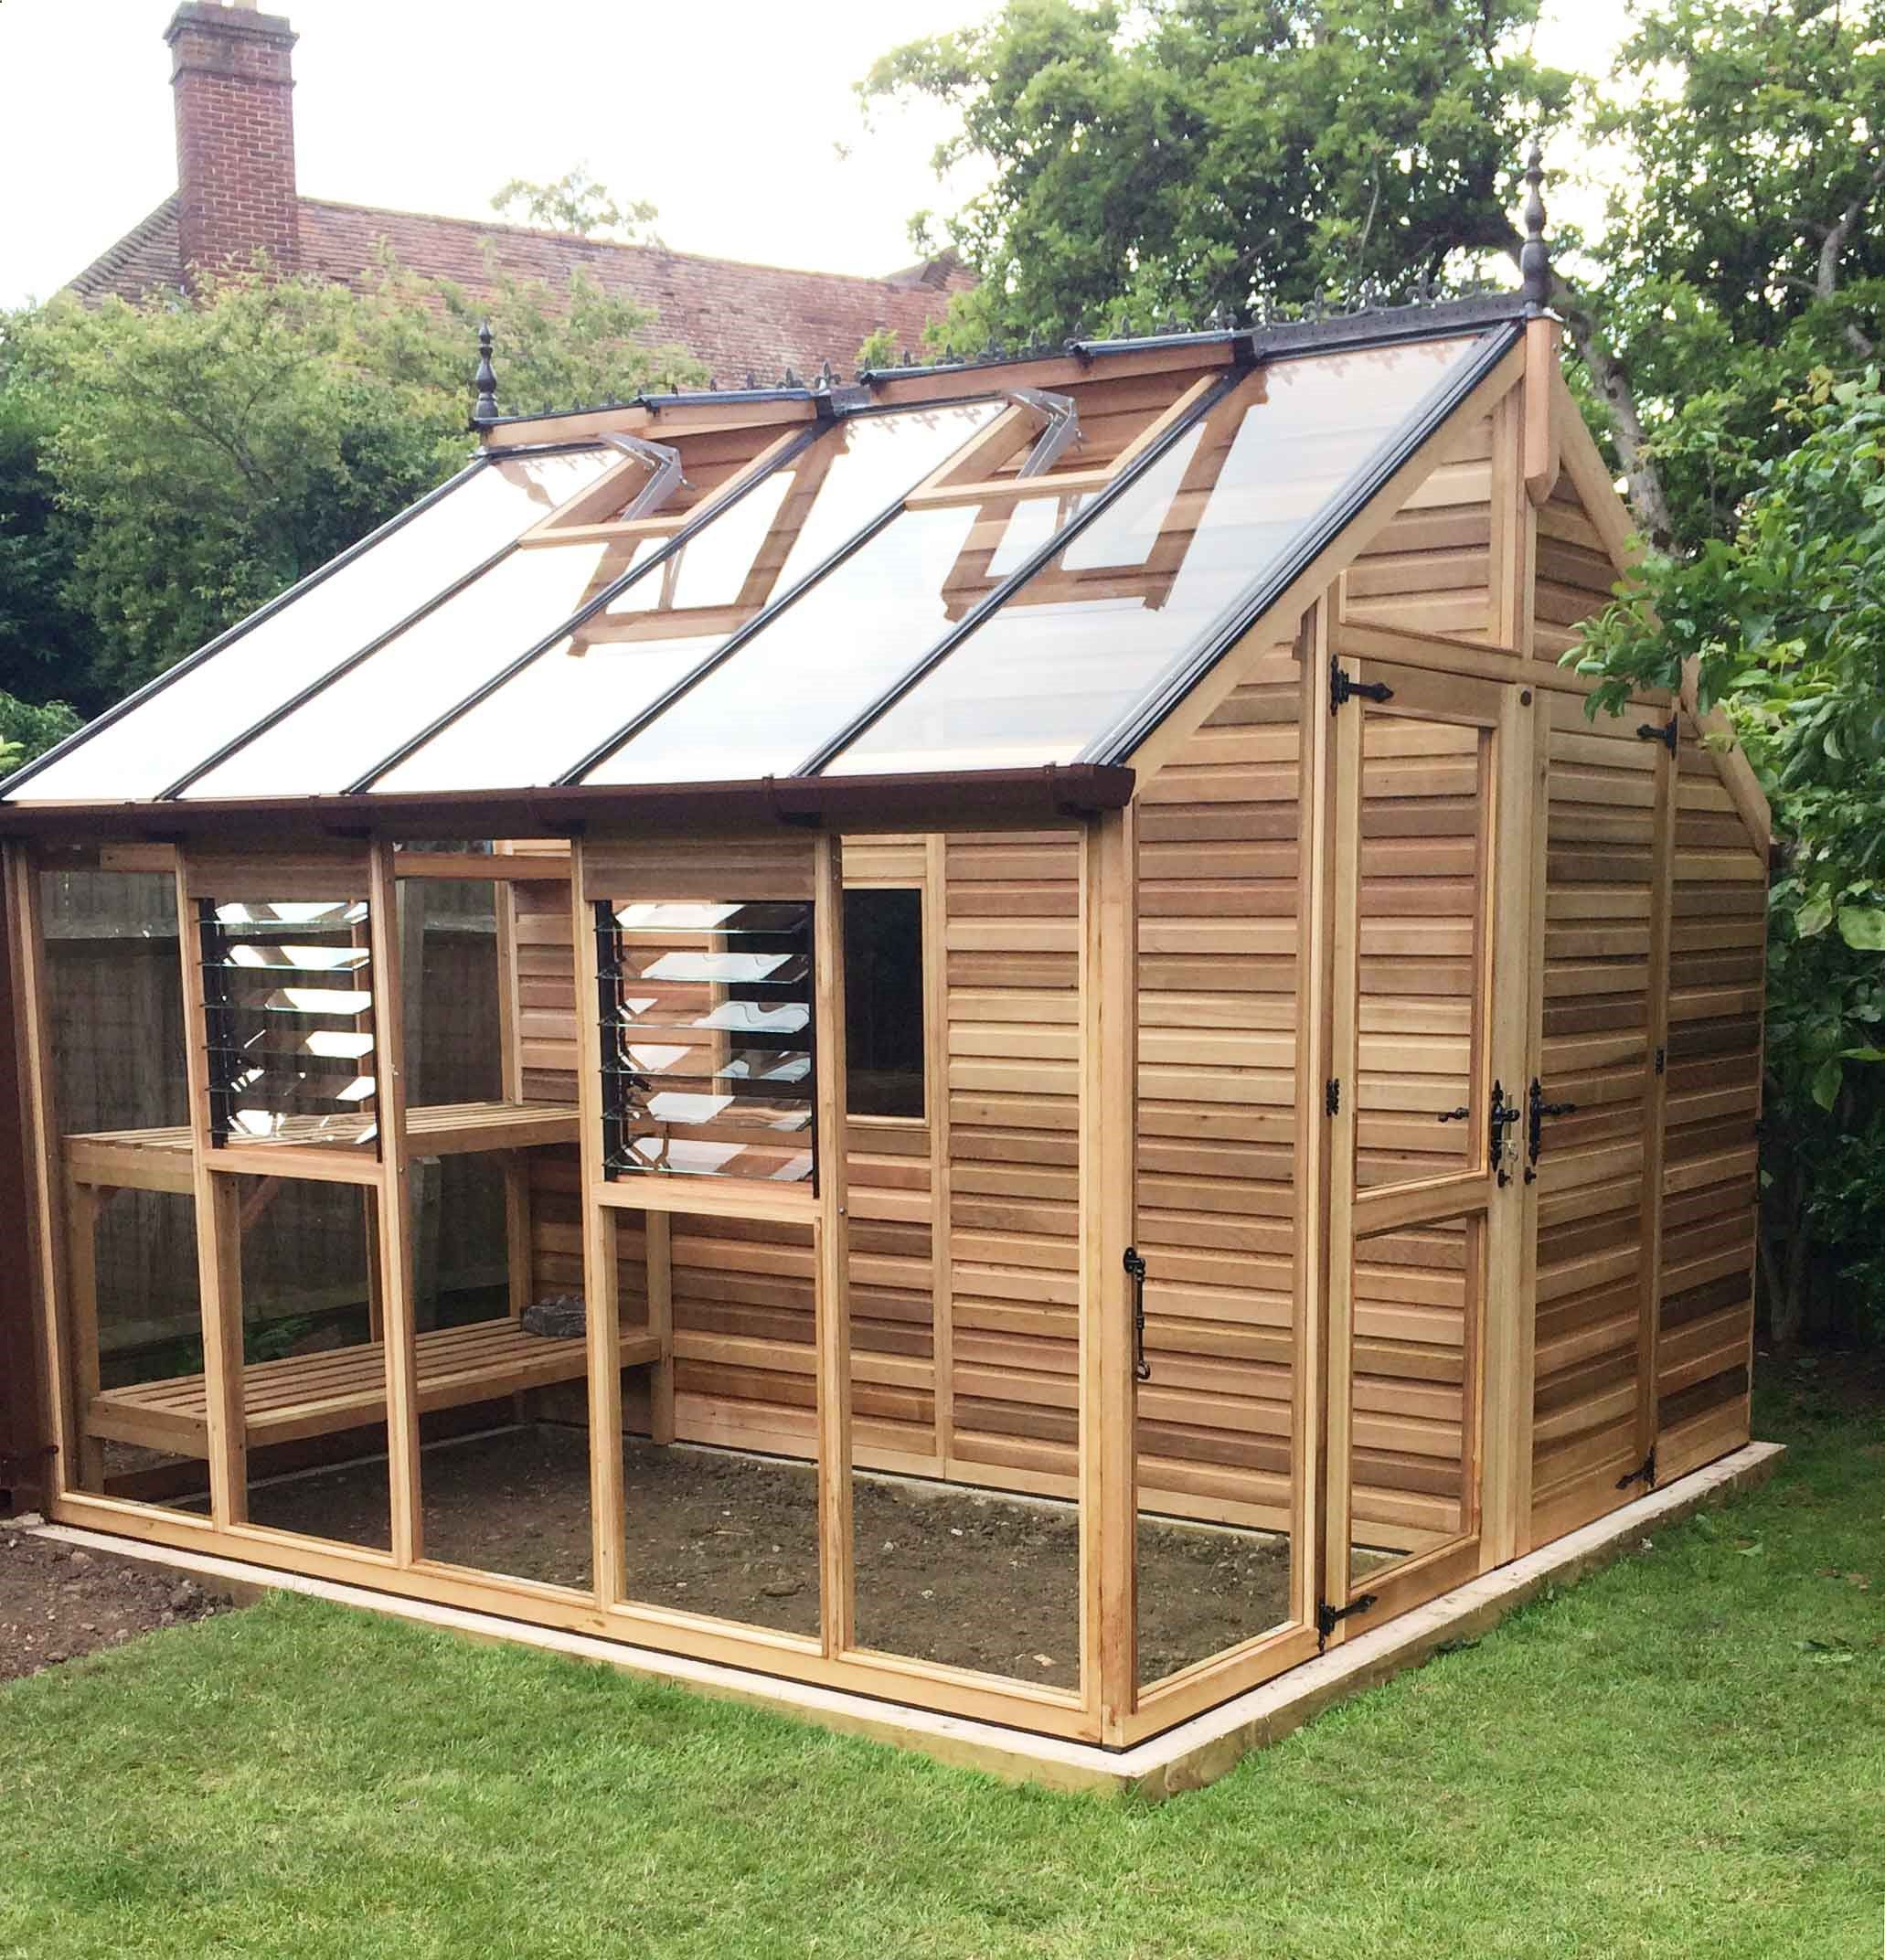 Shed Plans Cedar Centaur Shed Greenhouse Combo 12x12 Now You Can Build Any Shed In A Weekend Even If You Ve Ze Greenhouse Shed Building A Shed Diy Shed Plans